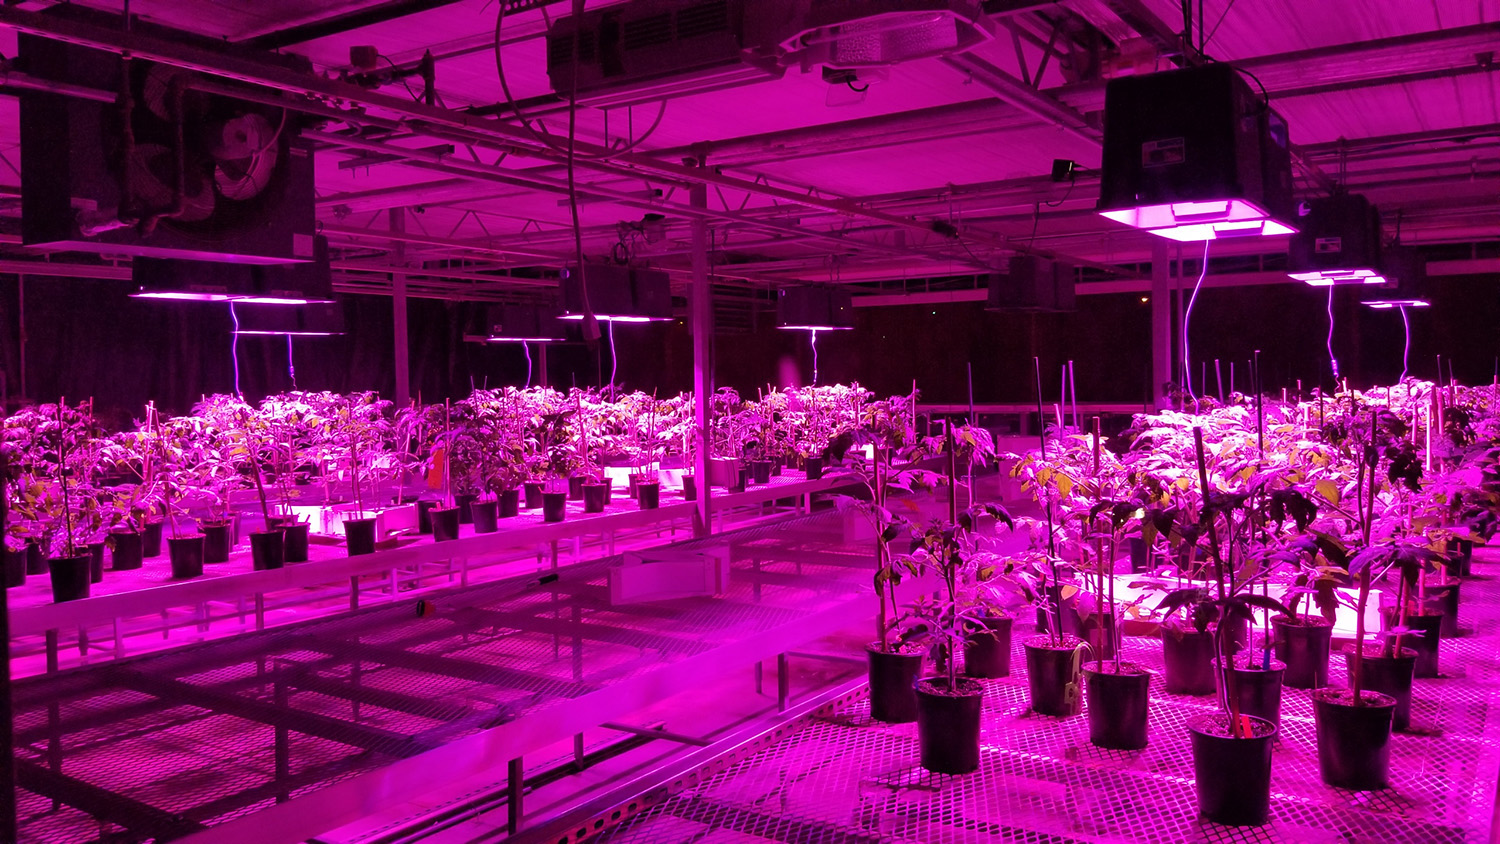 Purple light in greenhouse with tomato plants.